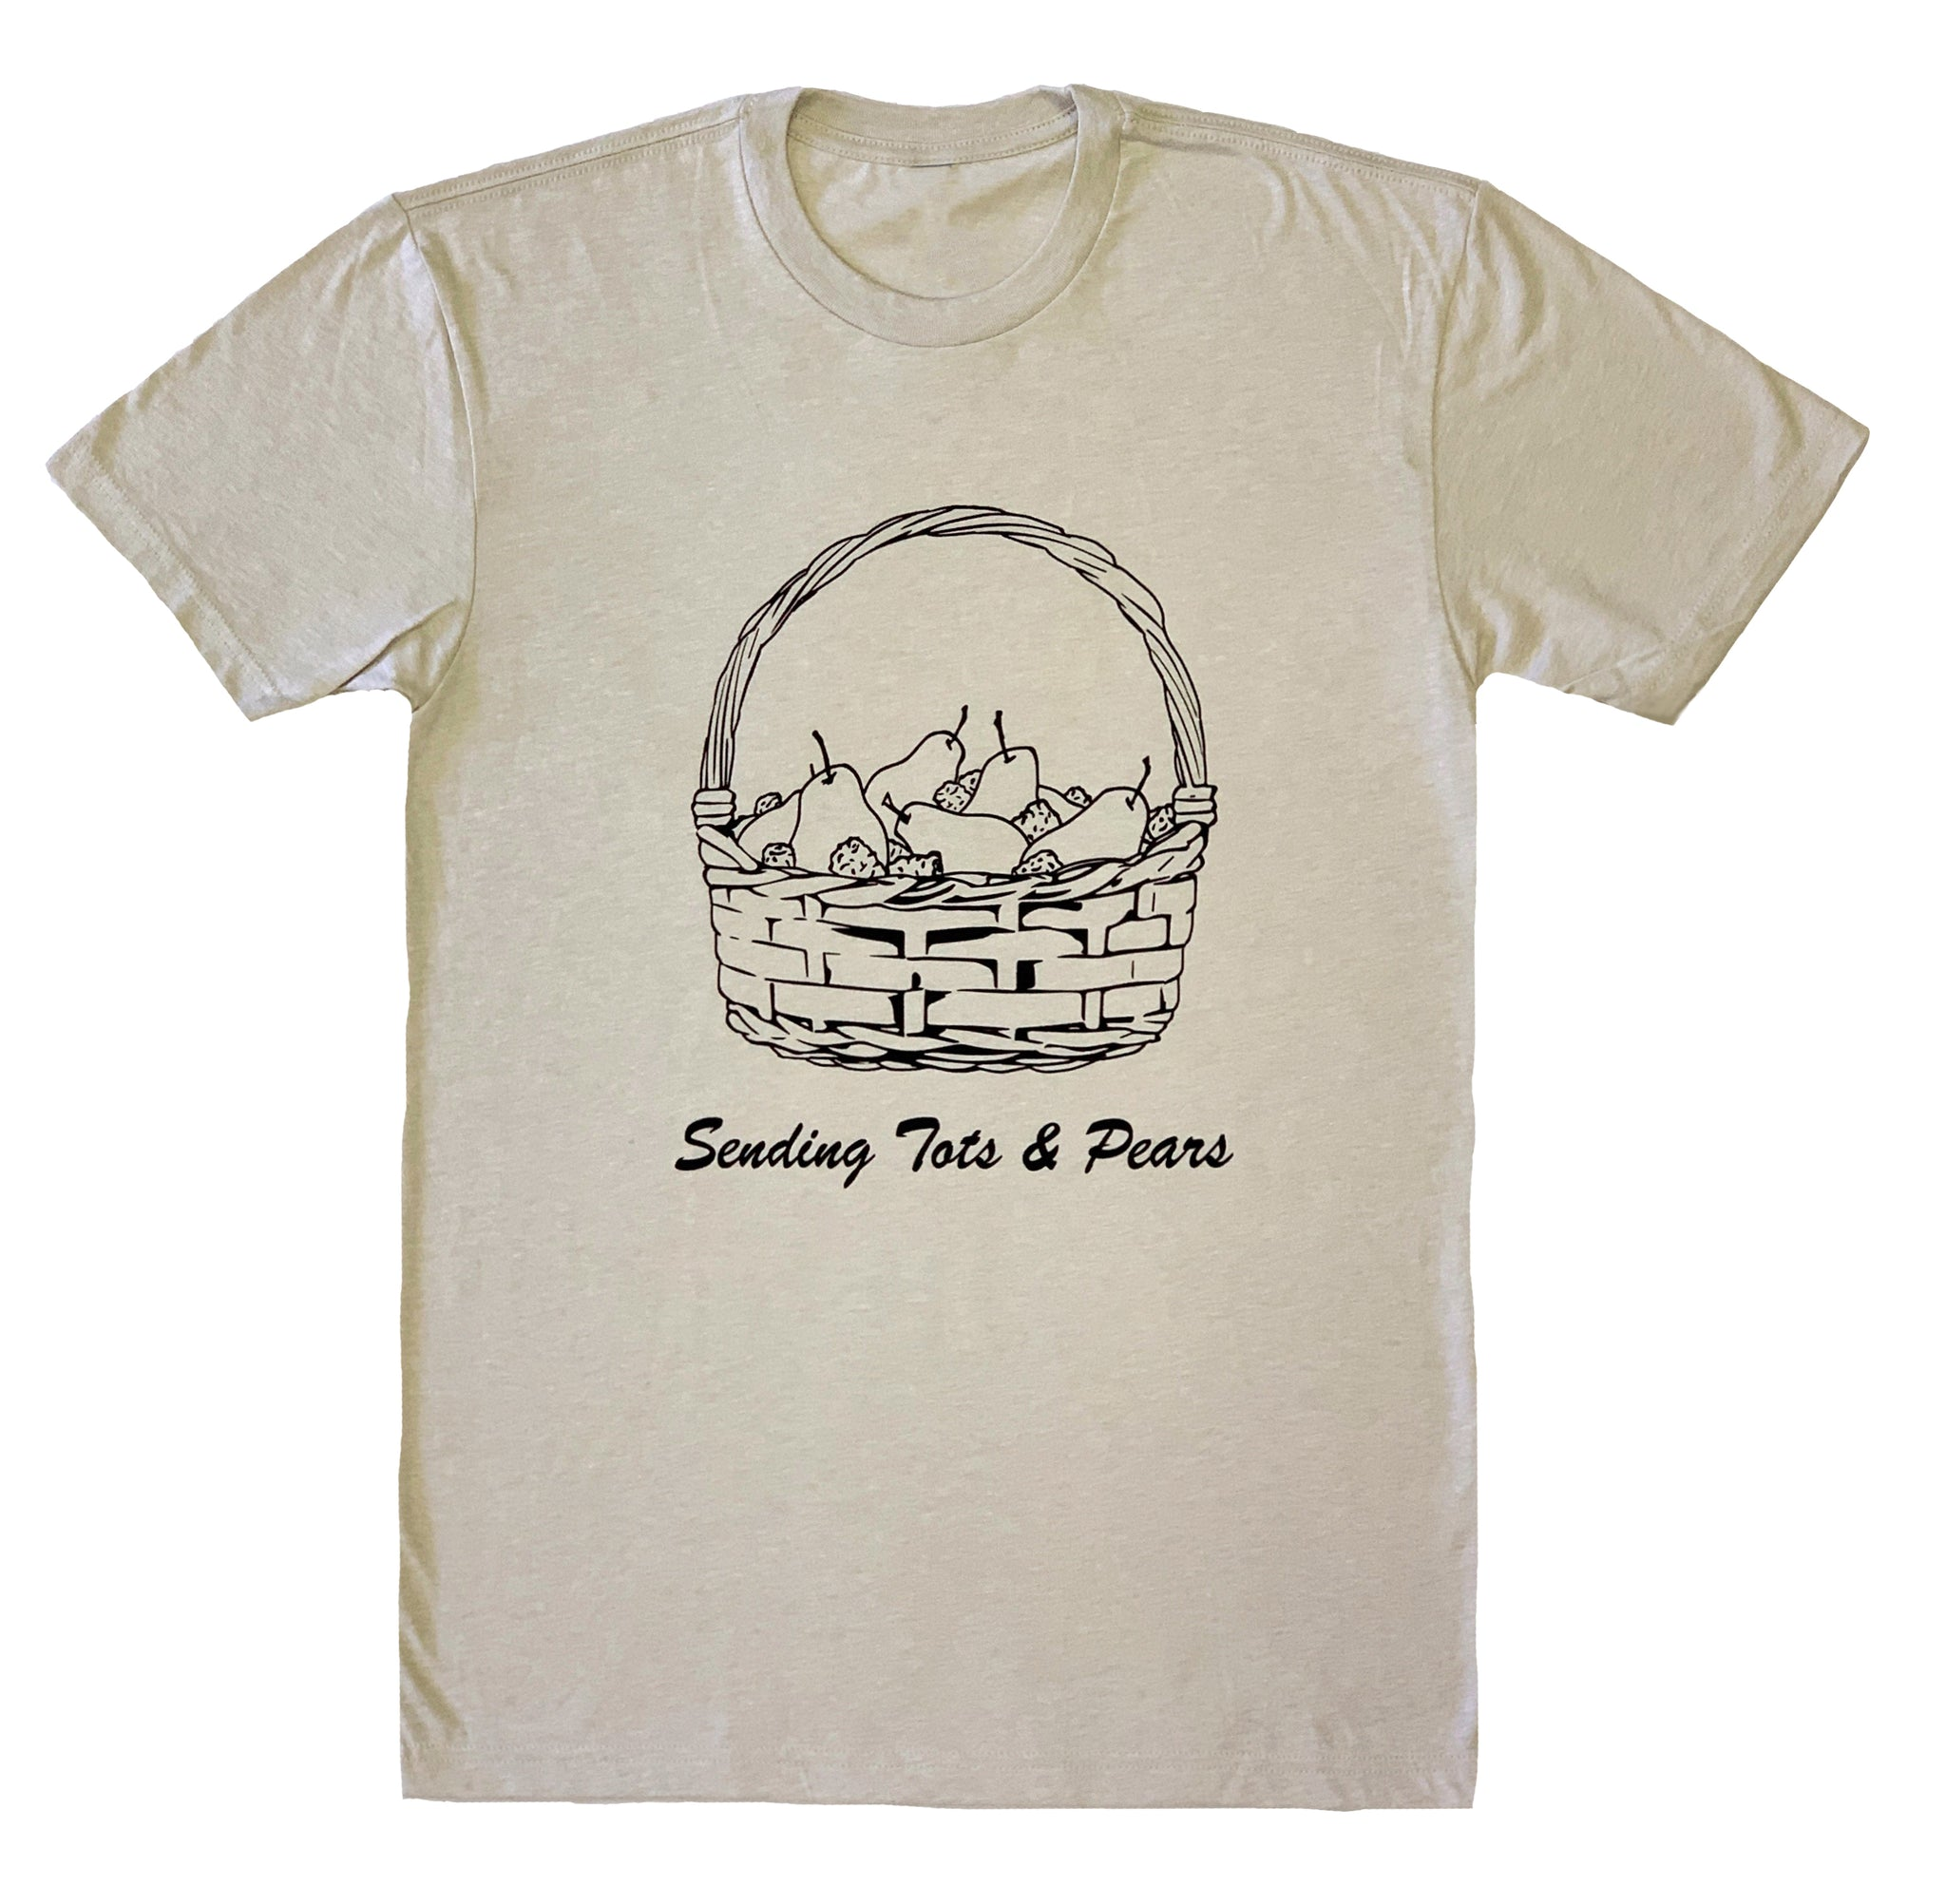 Sending Tots and Pears T-Shirt